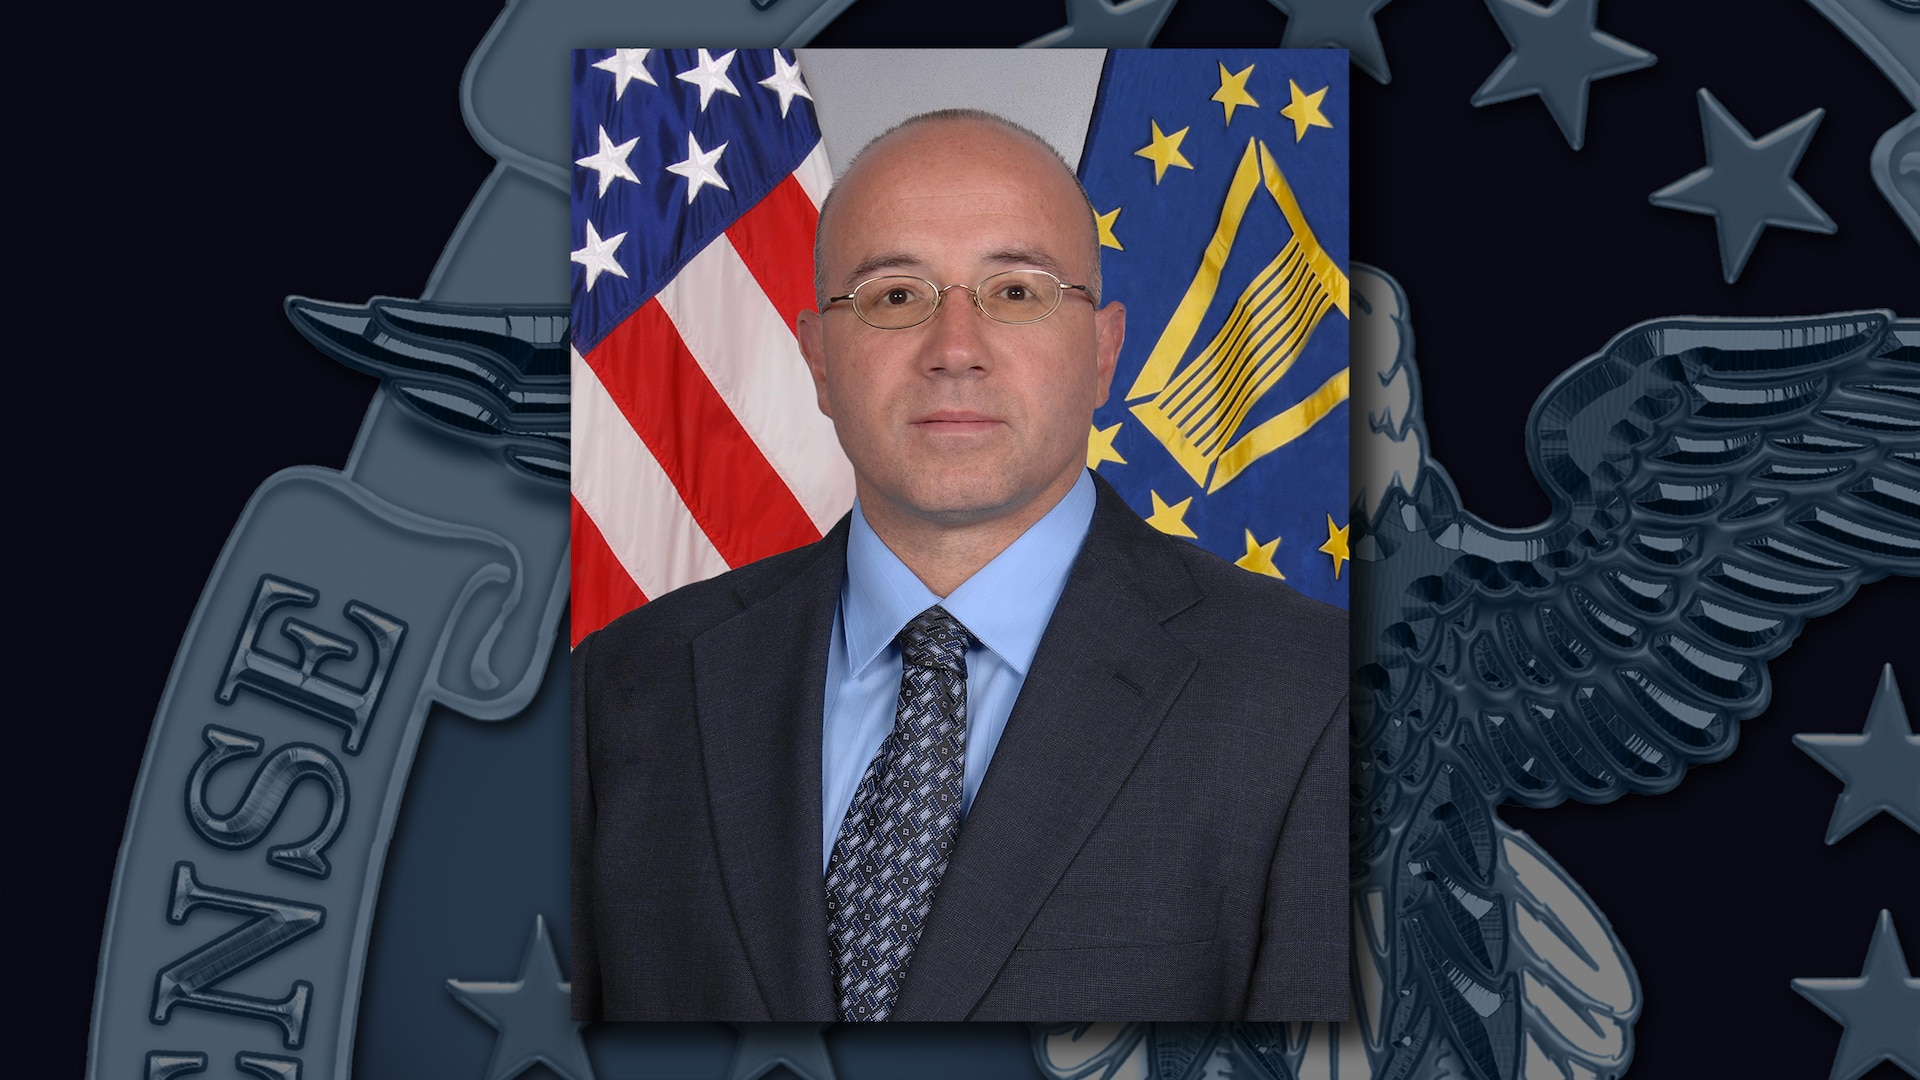 A portrait of Mike Scott on a DLA emblem background